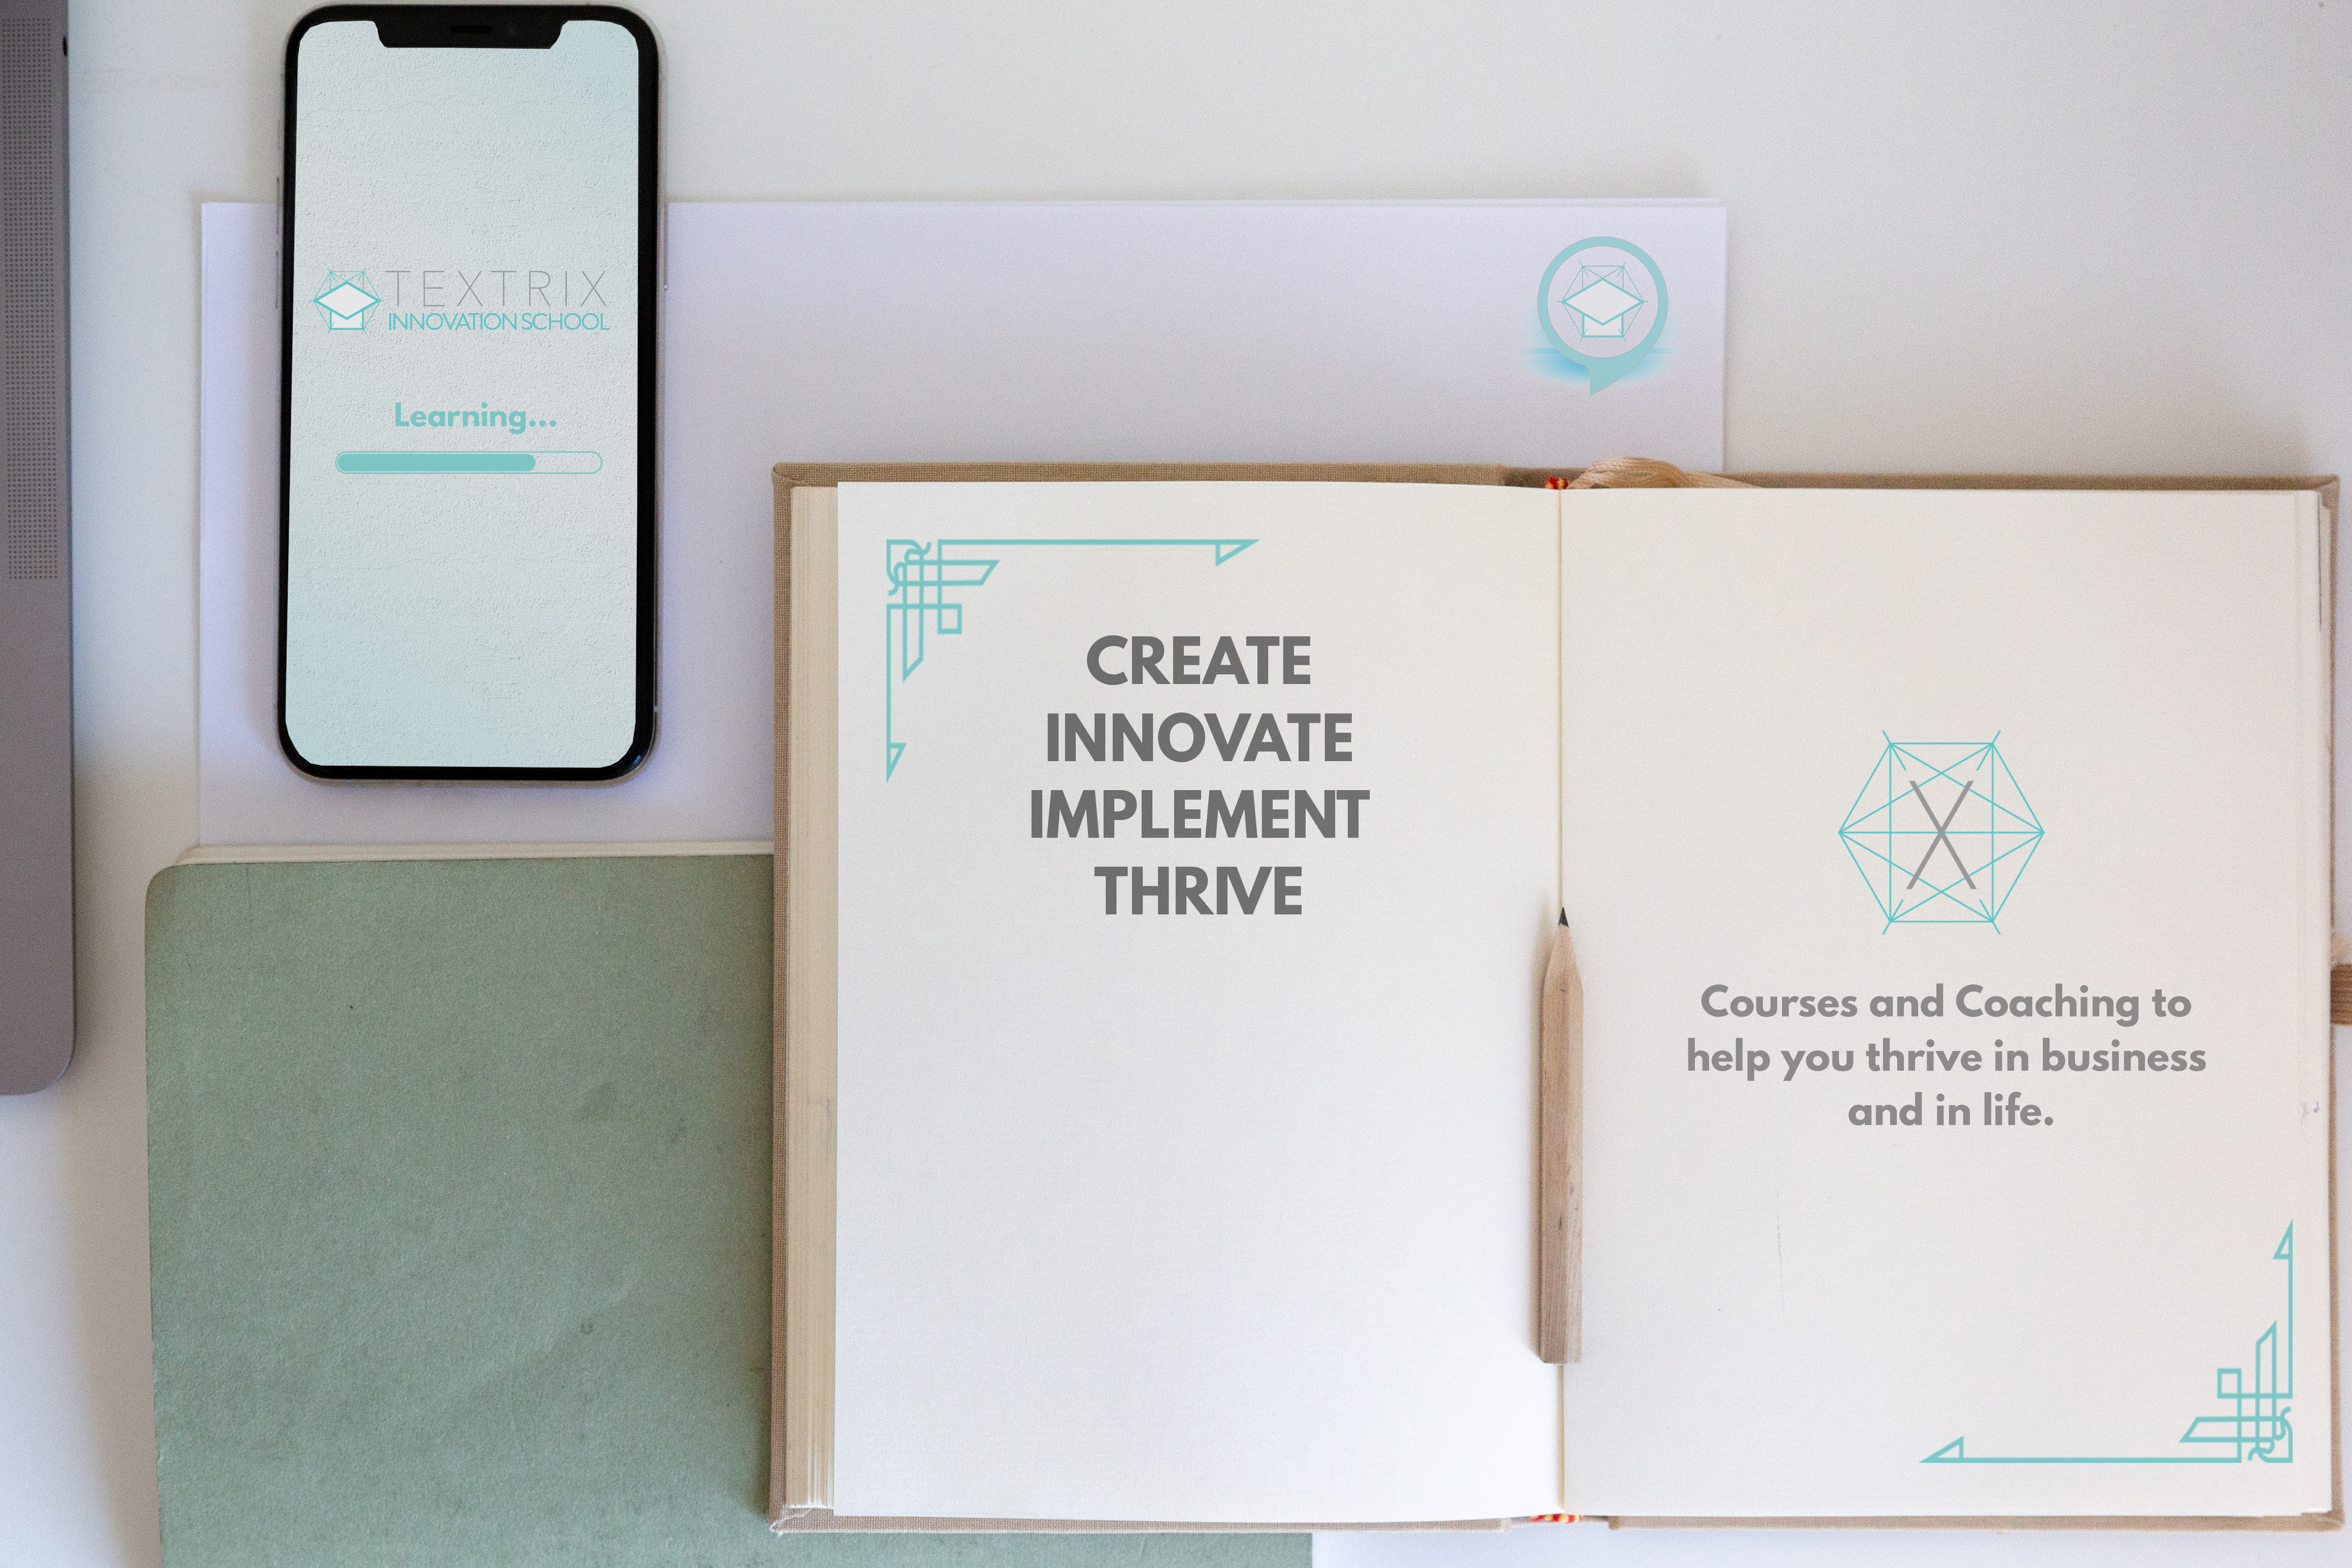 Create, Innovate, Implement, Thrive - Courses and coaching to help you thrive in business and life.